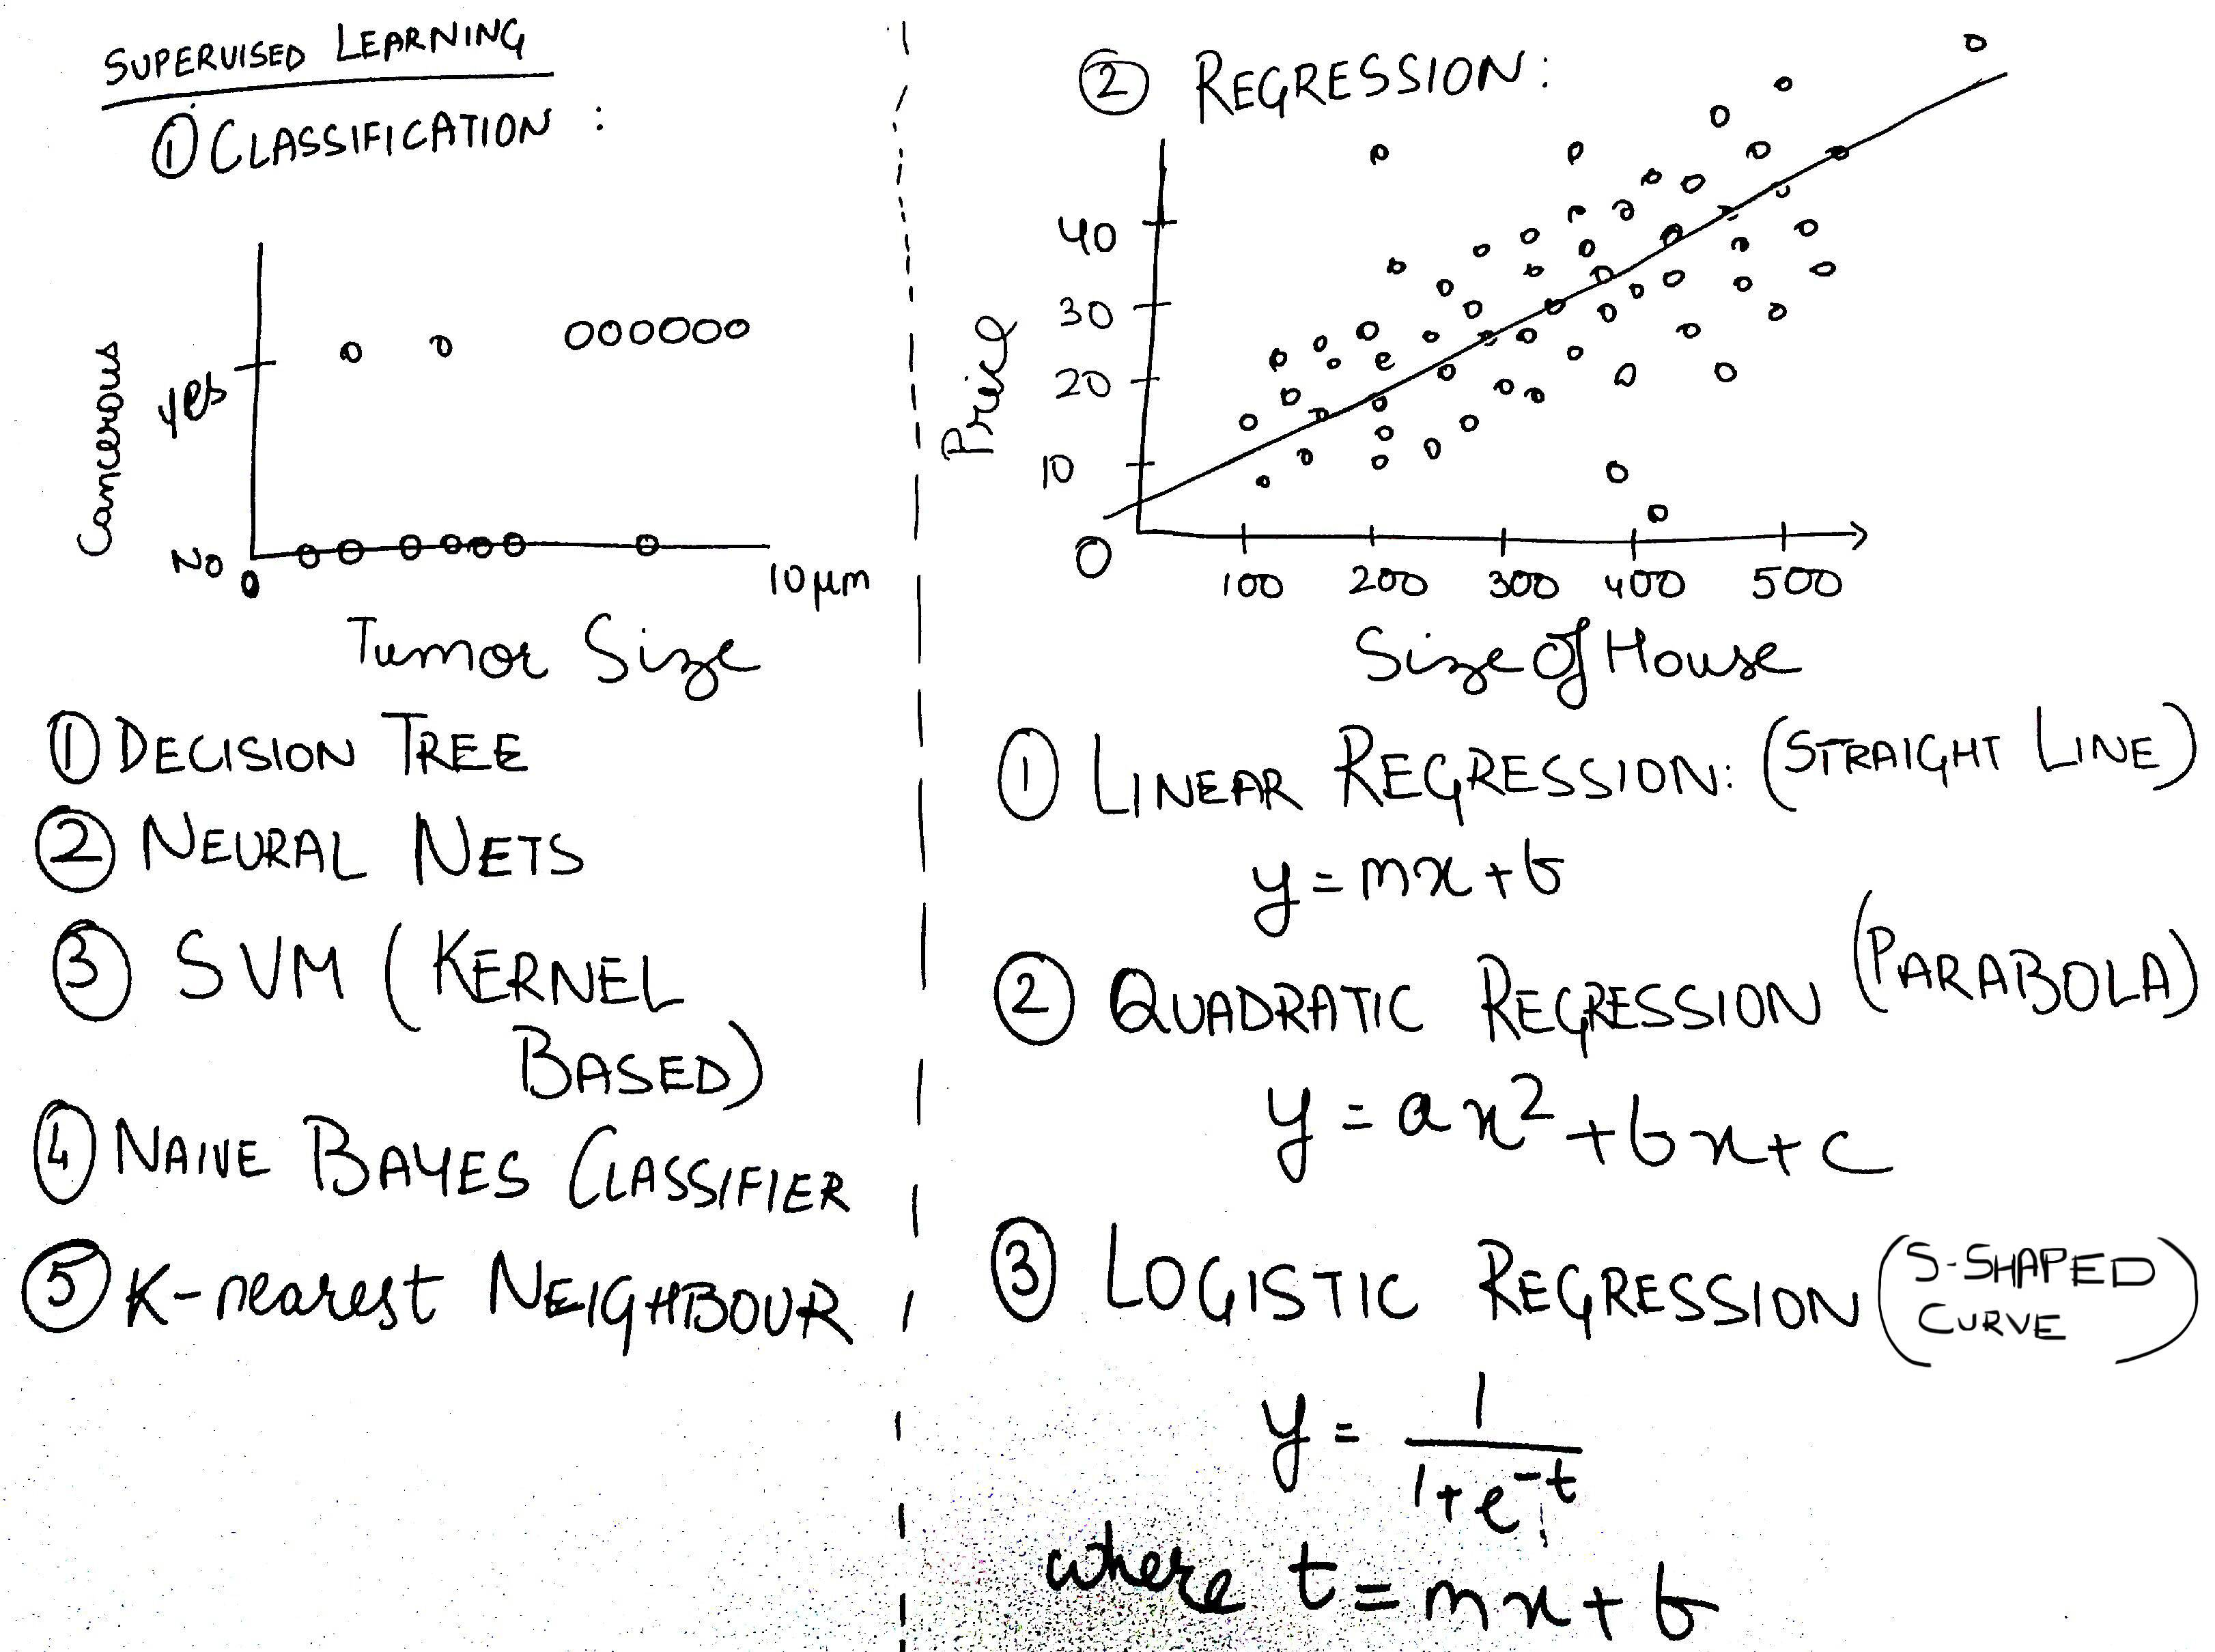 Classification vs Regression